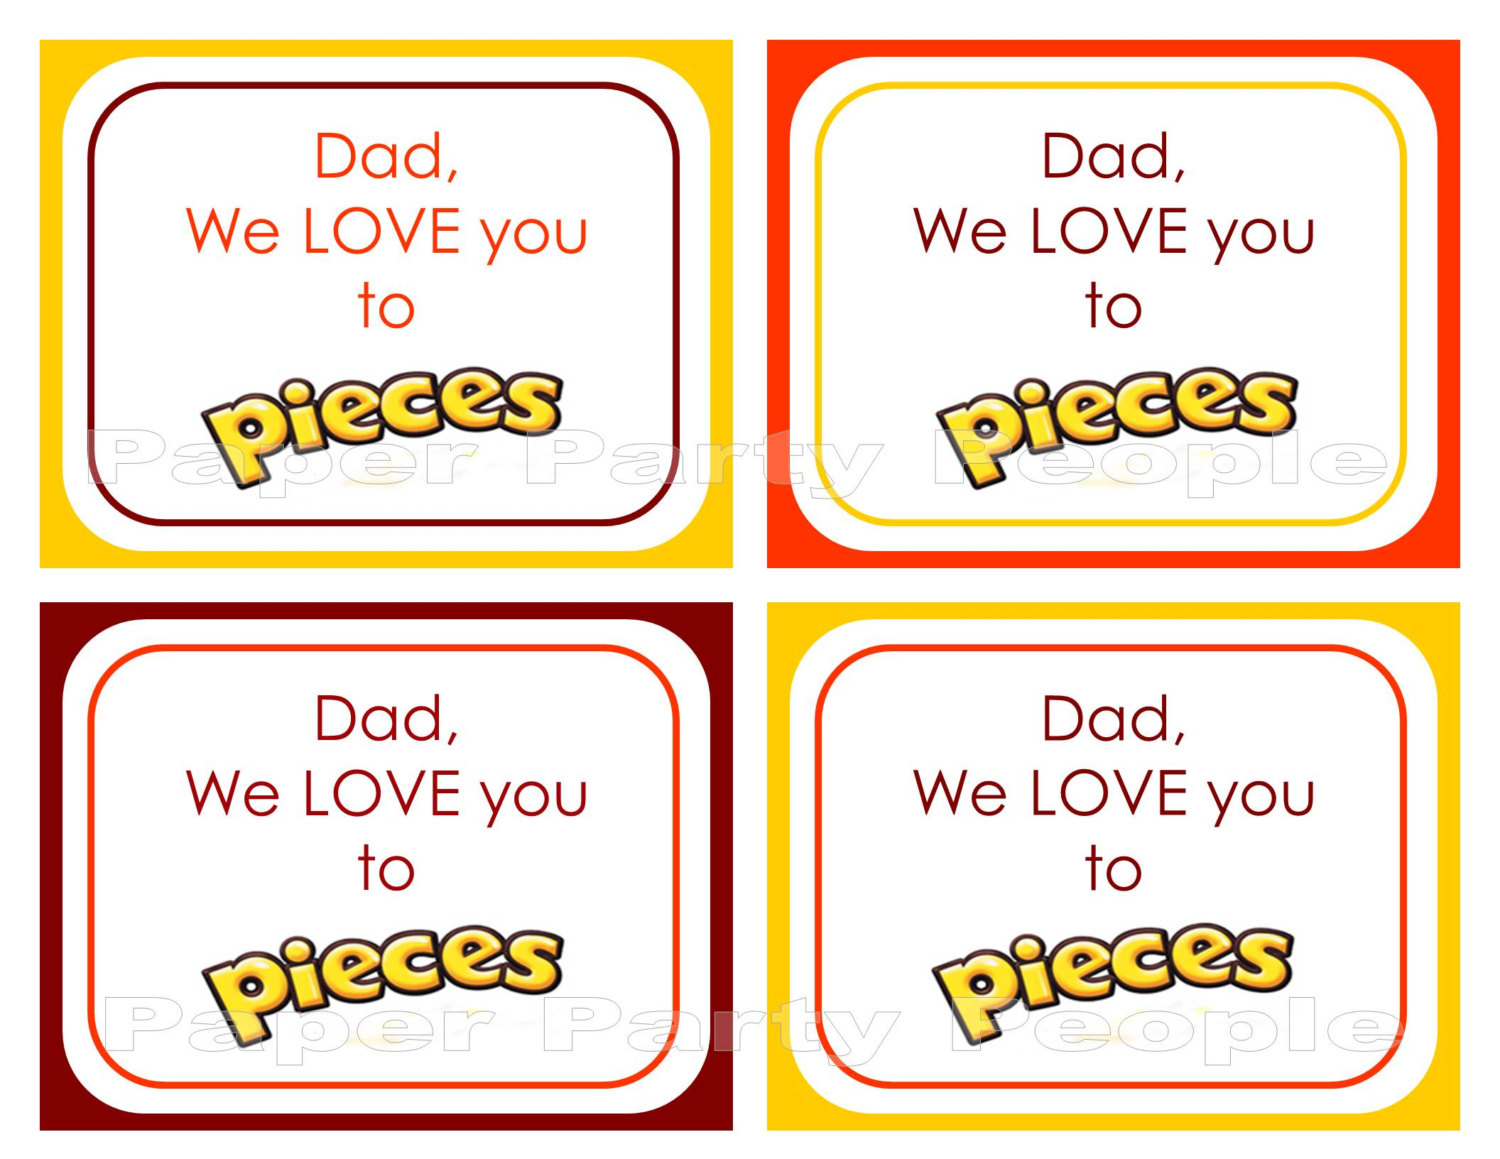 Daddy We Love You to Pieces Printable